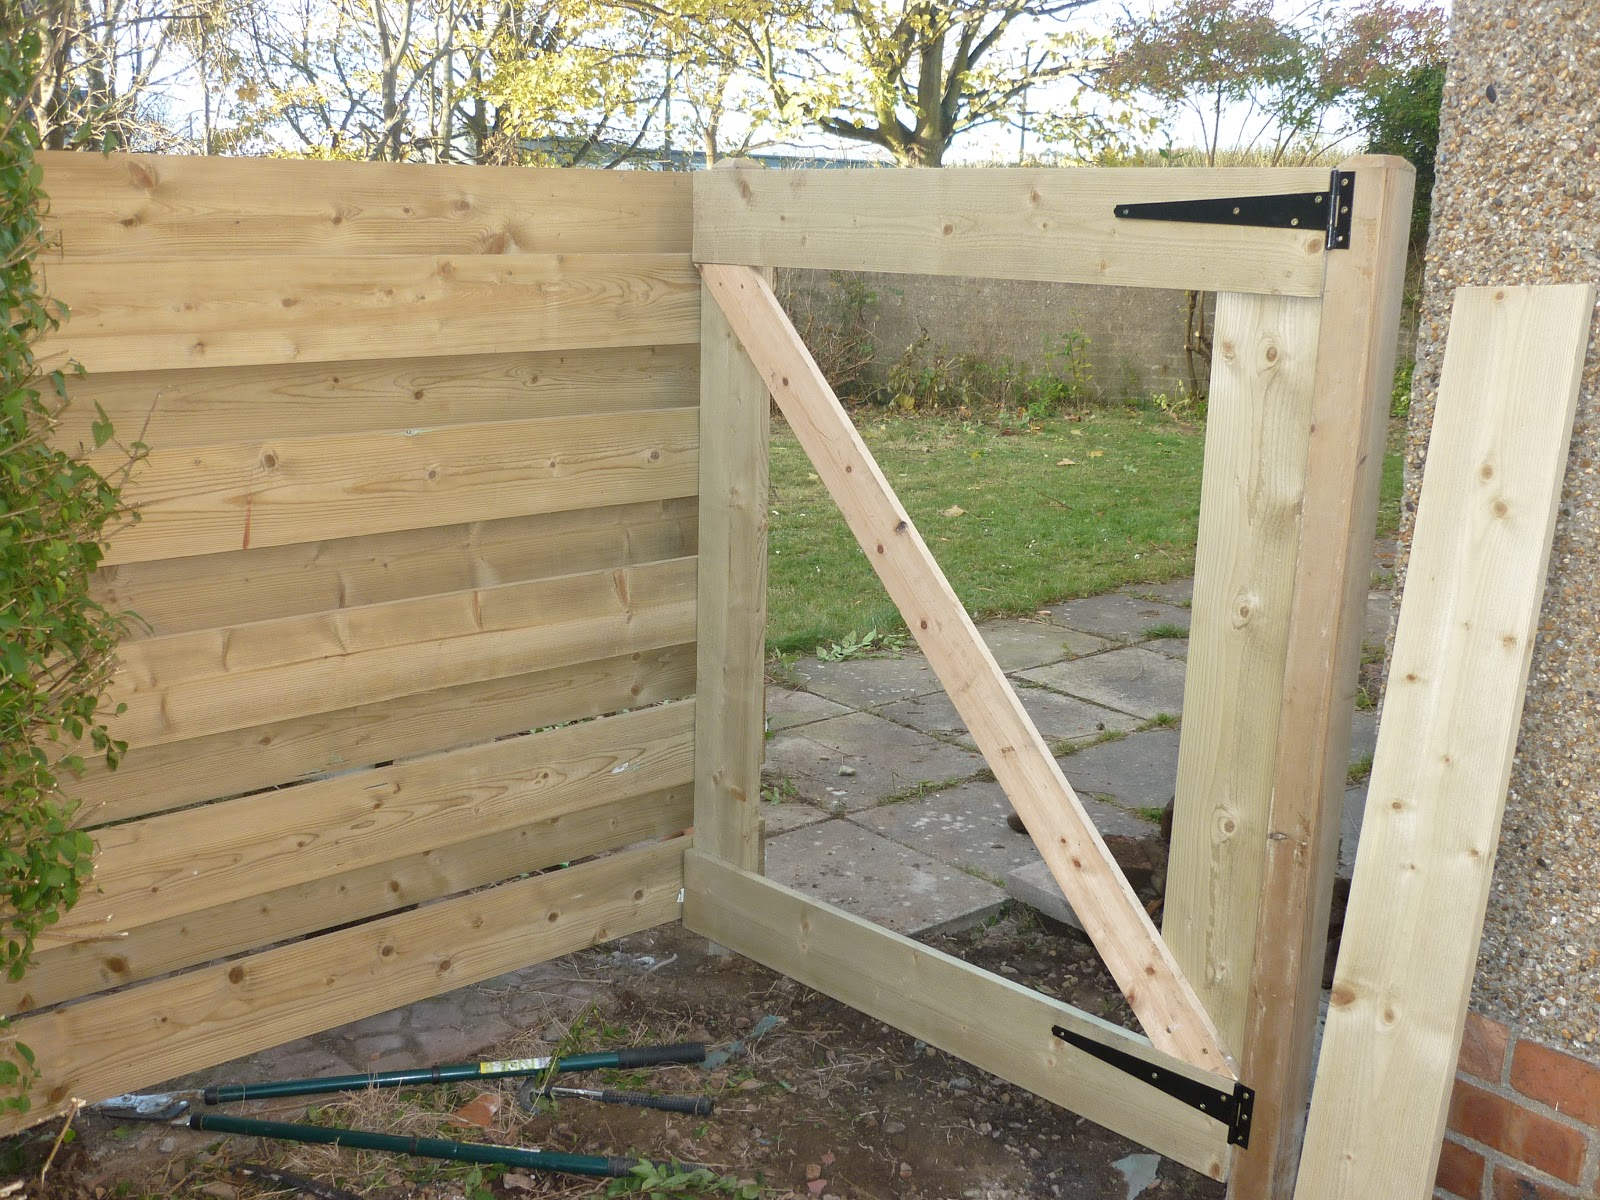 The Existing Fence And Gate Had Rotted Away Now Their Garden Was Being Used As A Thoroughfare By Local Neds